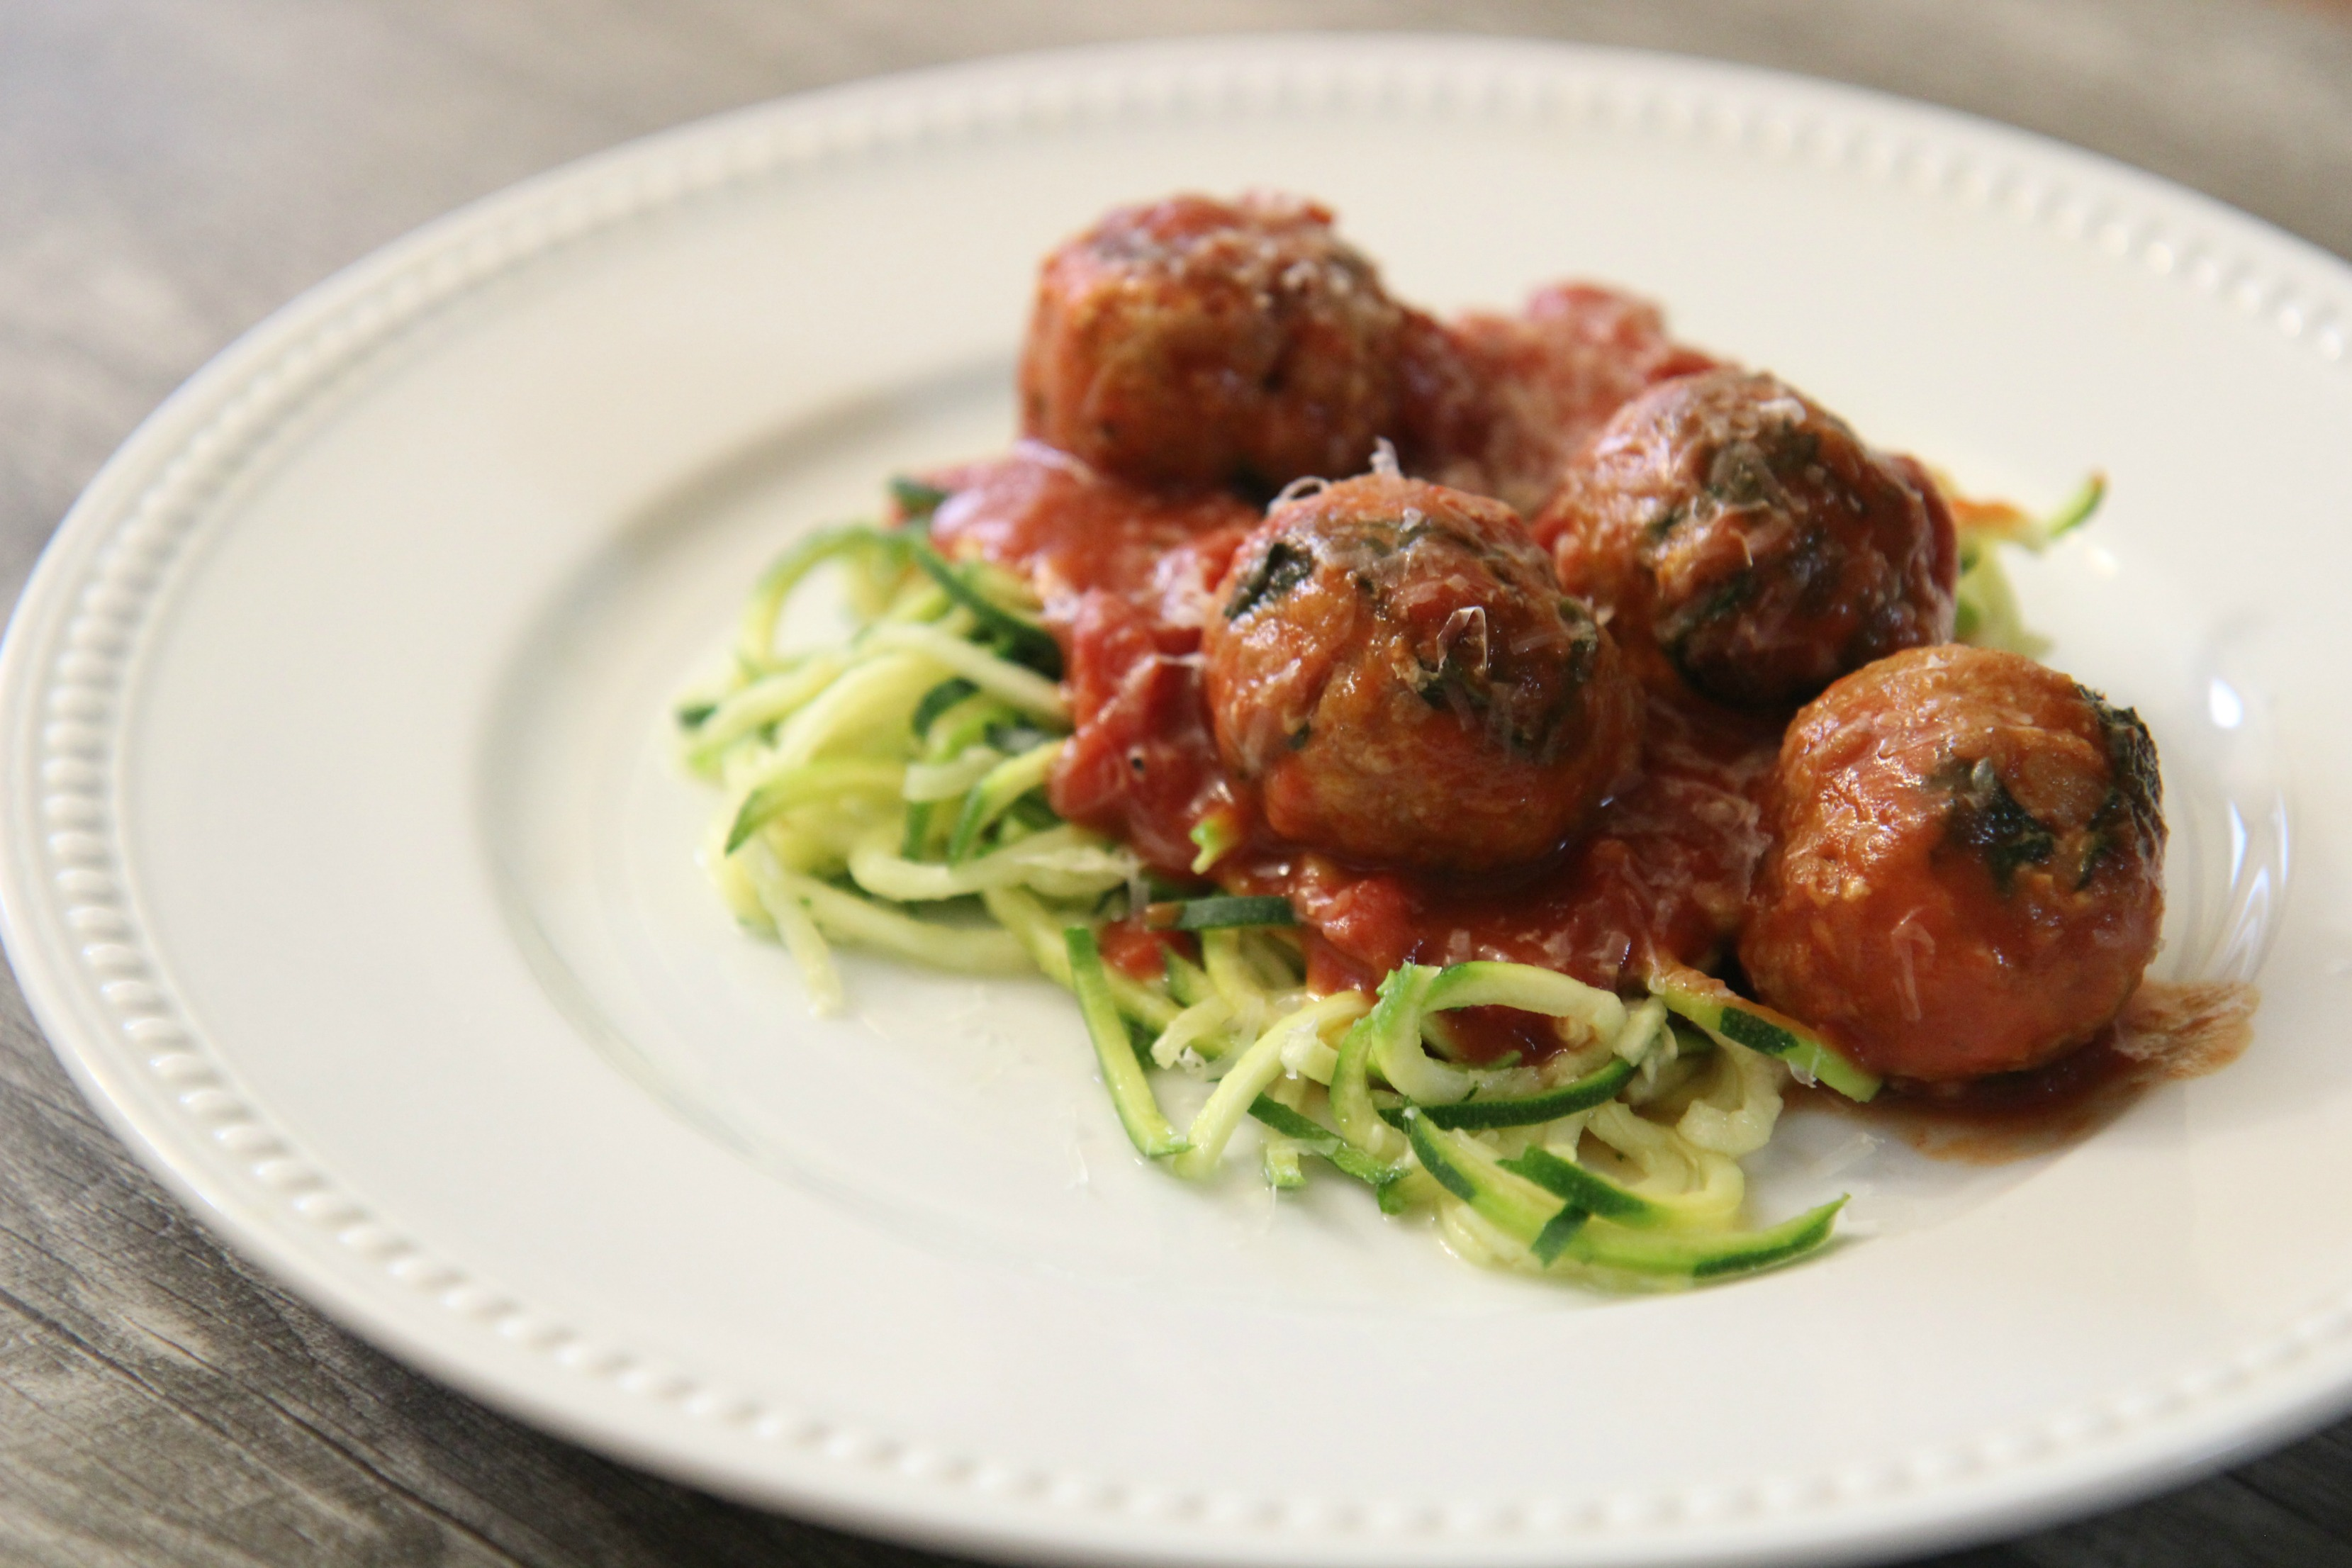 Baked turkey meatballs with spinach in tomato sauce and served with zucchini noodles